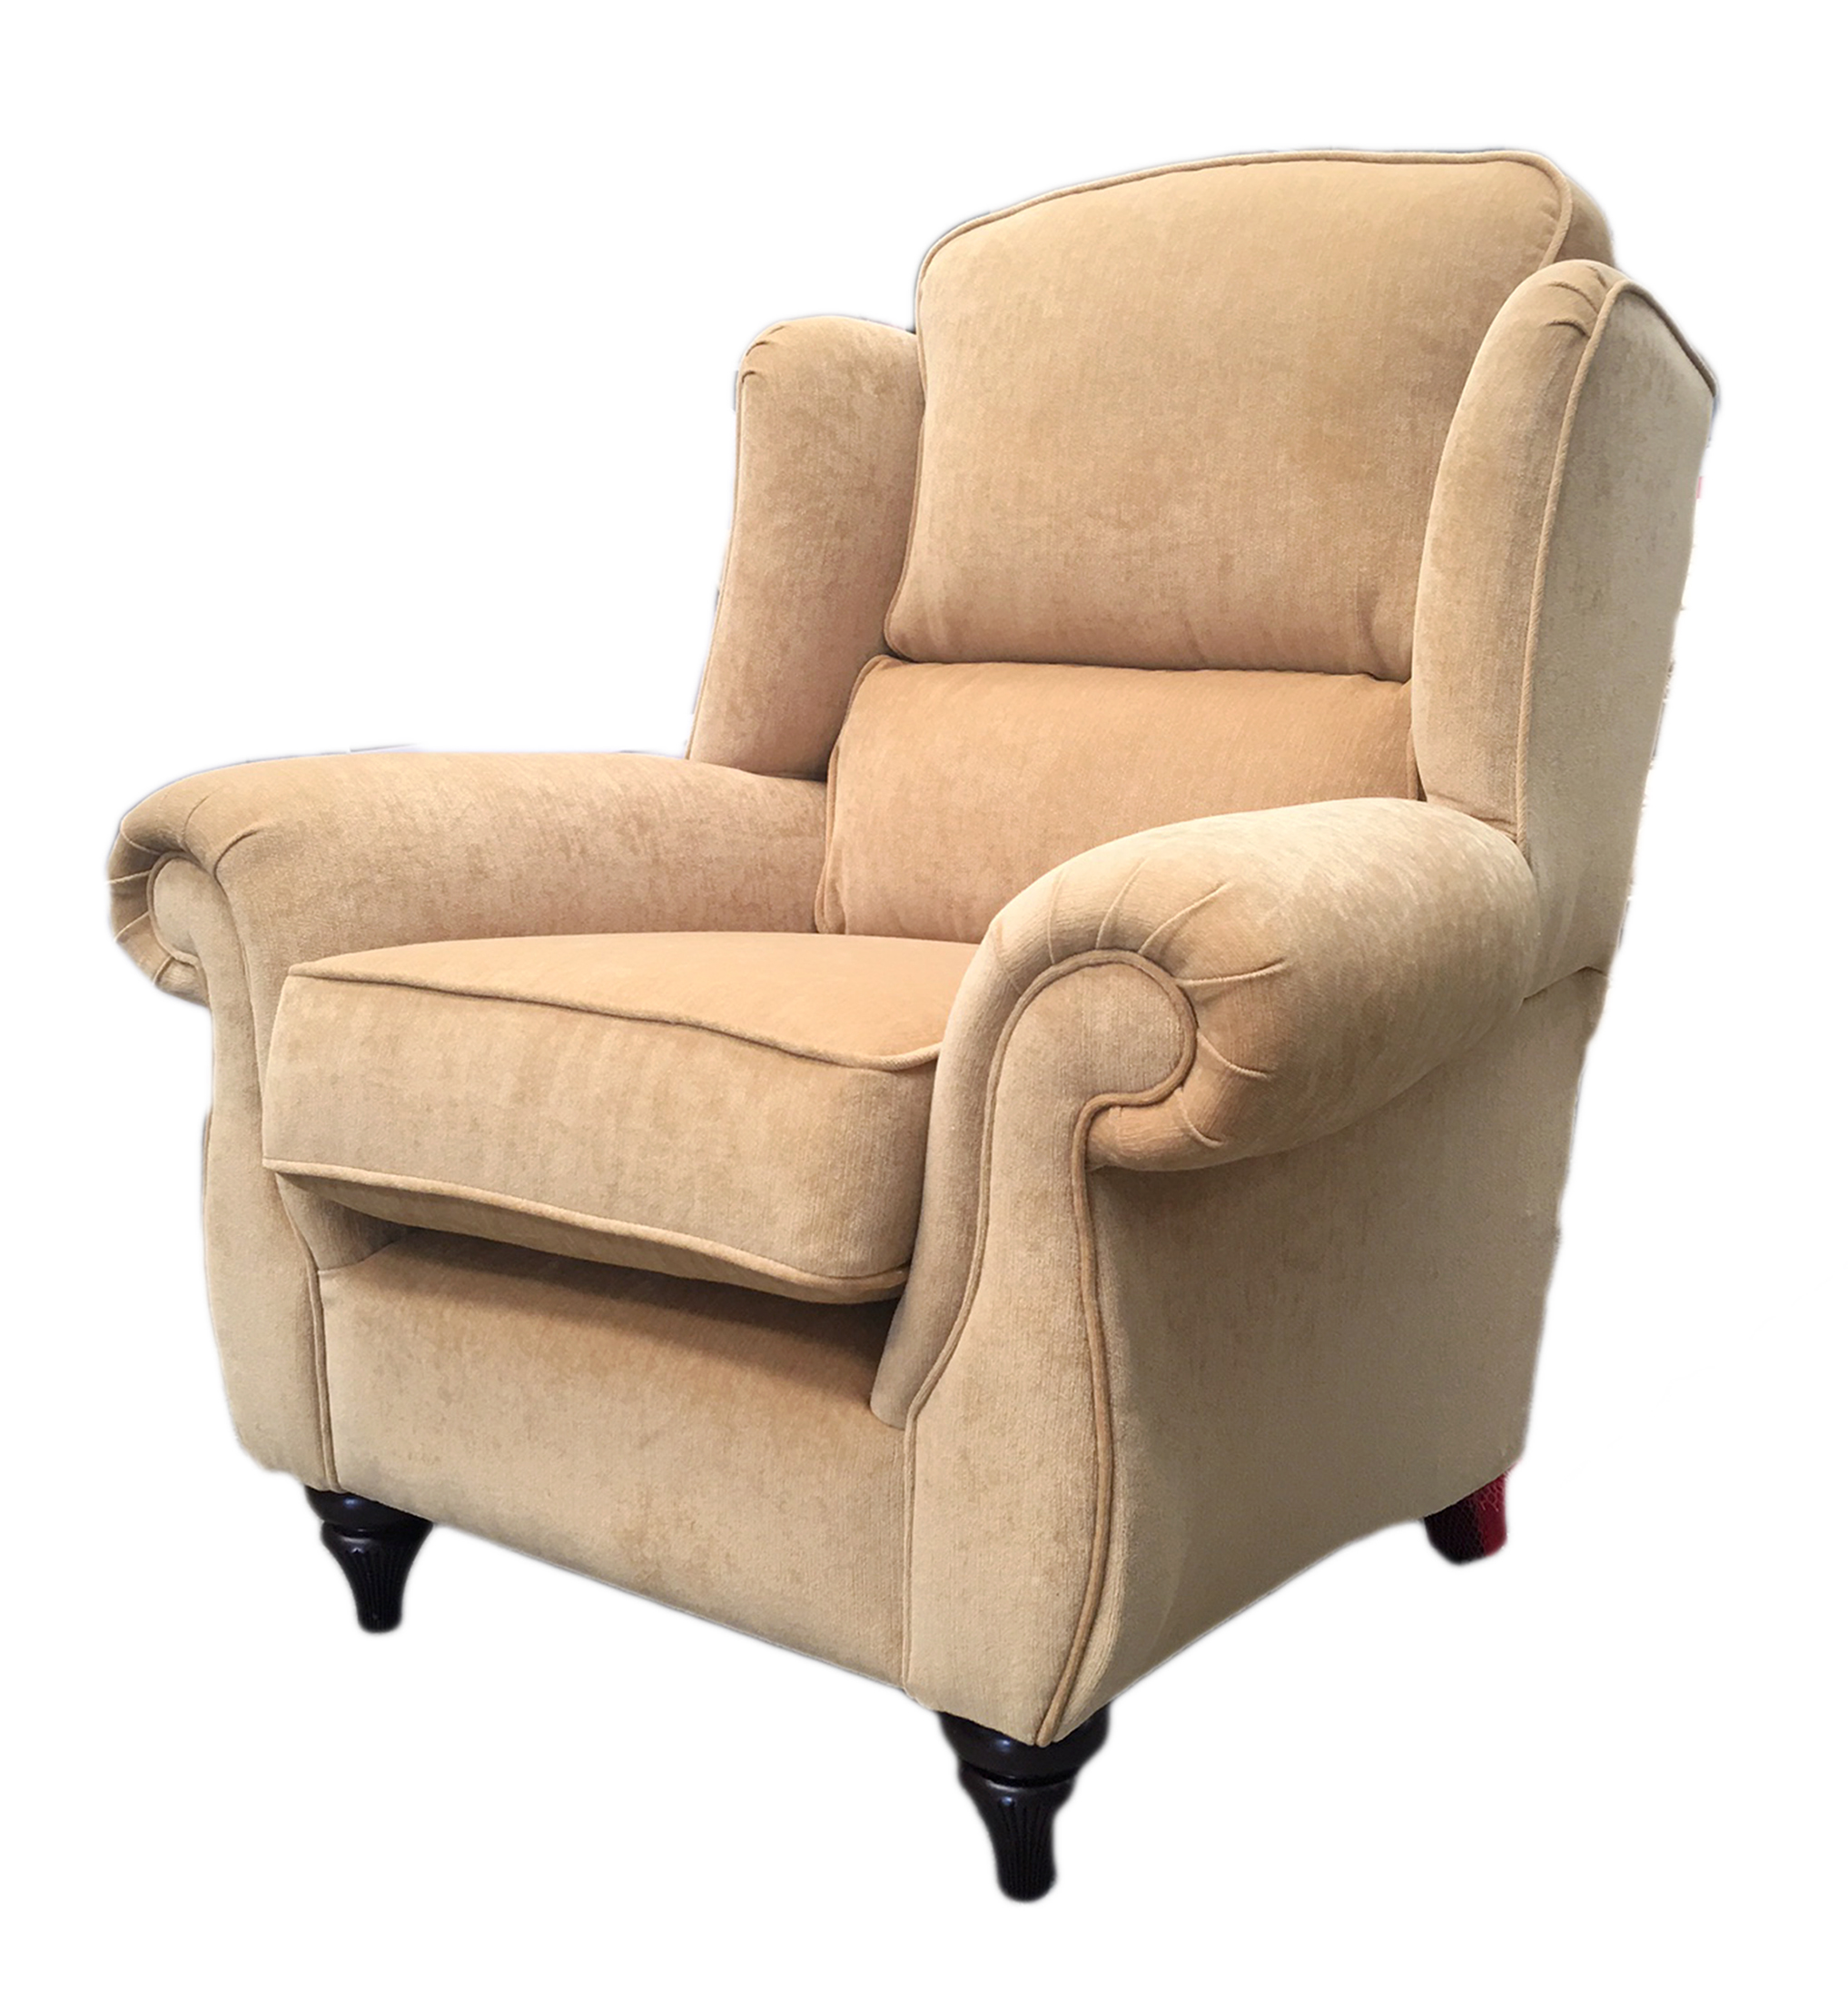 Greville Sofas Chairs Finline Furniture